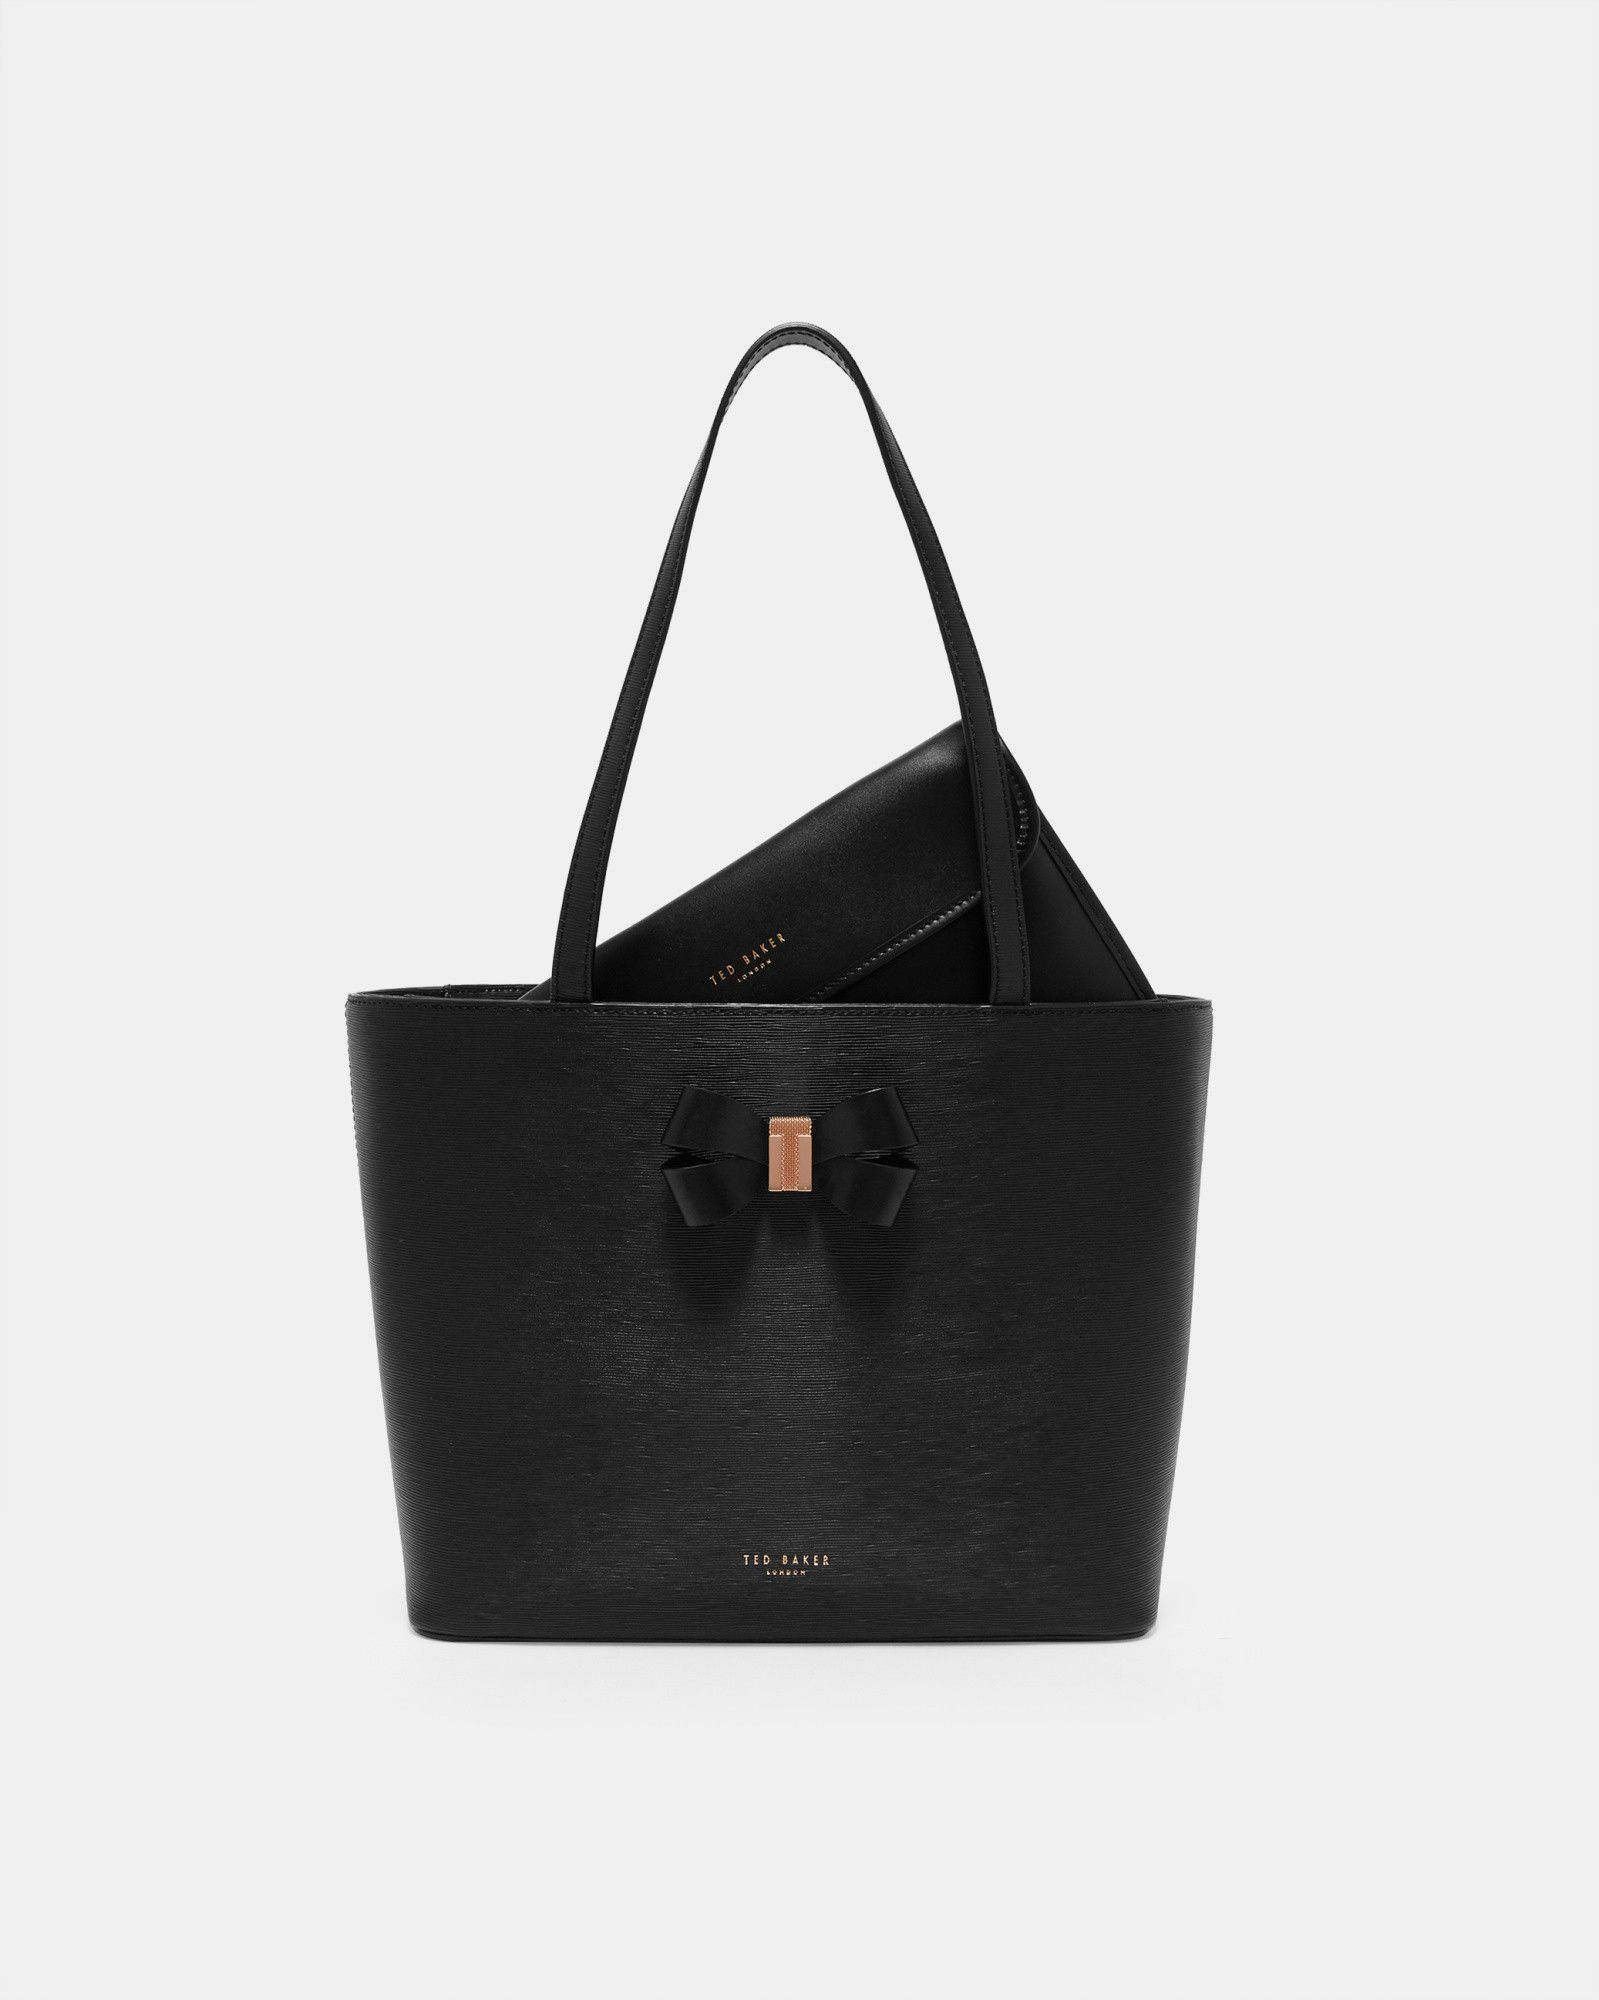 e8528efc3fc Ted Baker Bow detail small leather shopper bag Black | Products ...